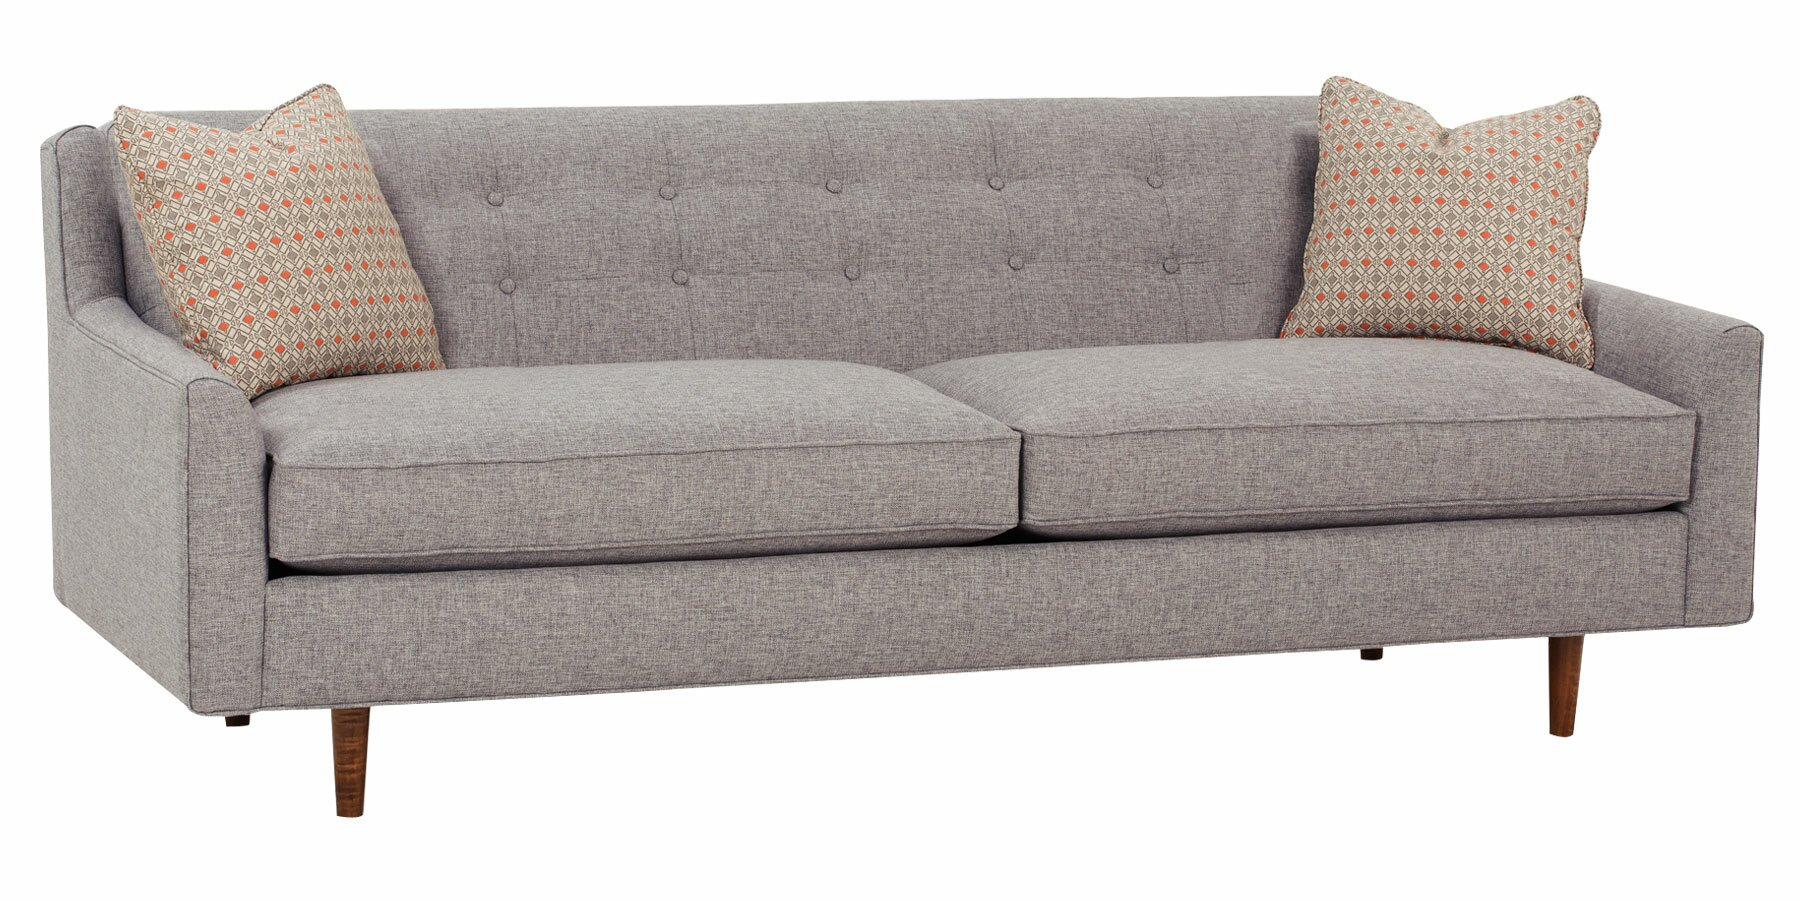 Danish Modern Sofas Catchy Mid Century Modern Sleeper Sofa